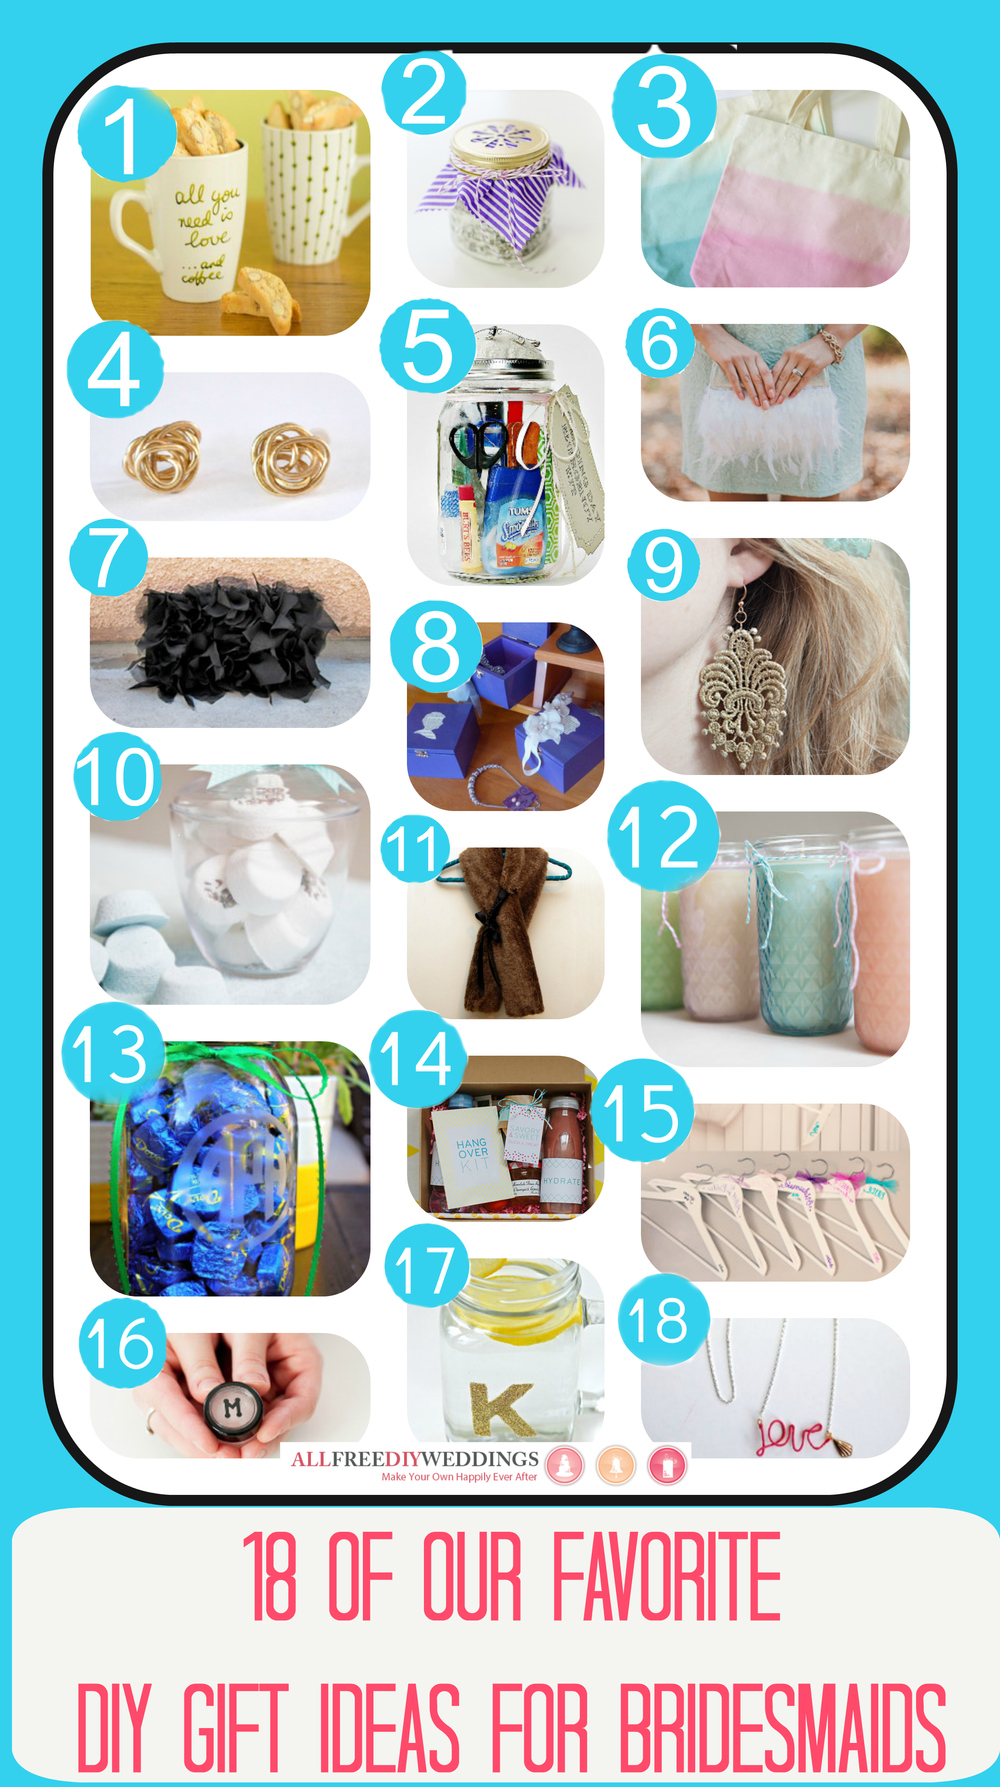 Wedding Parting Gift Ideas: Our Favorite DIY Gift Ideas For Bridesmaids